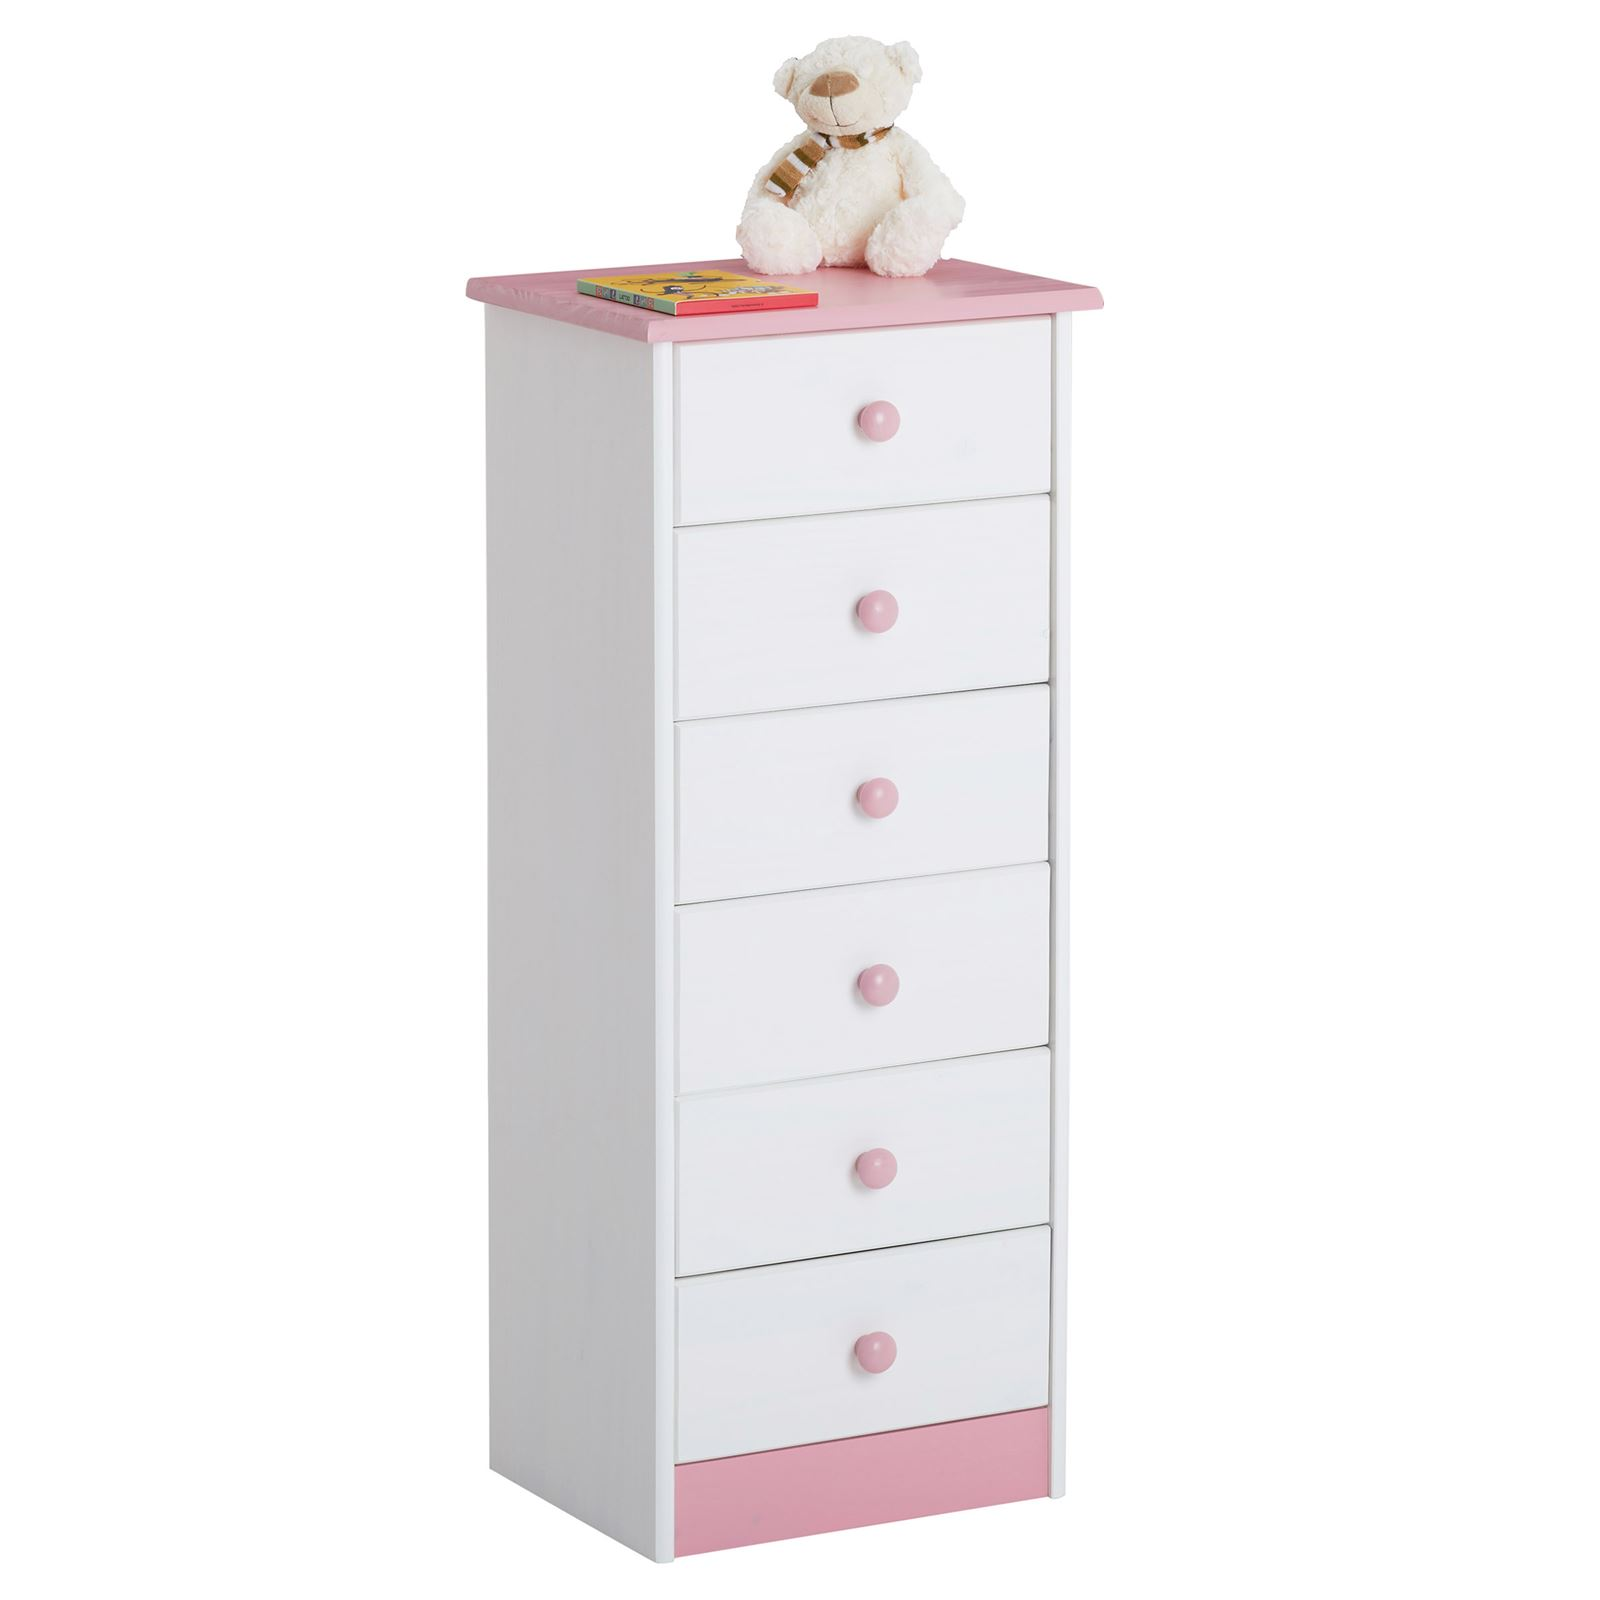 kommode hochschrank mit 6 schubladen highboard kiefer massiv lackiert in 3 farbe ebay. Black Bedroom Furniture Sets. Home Design Ideas